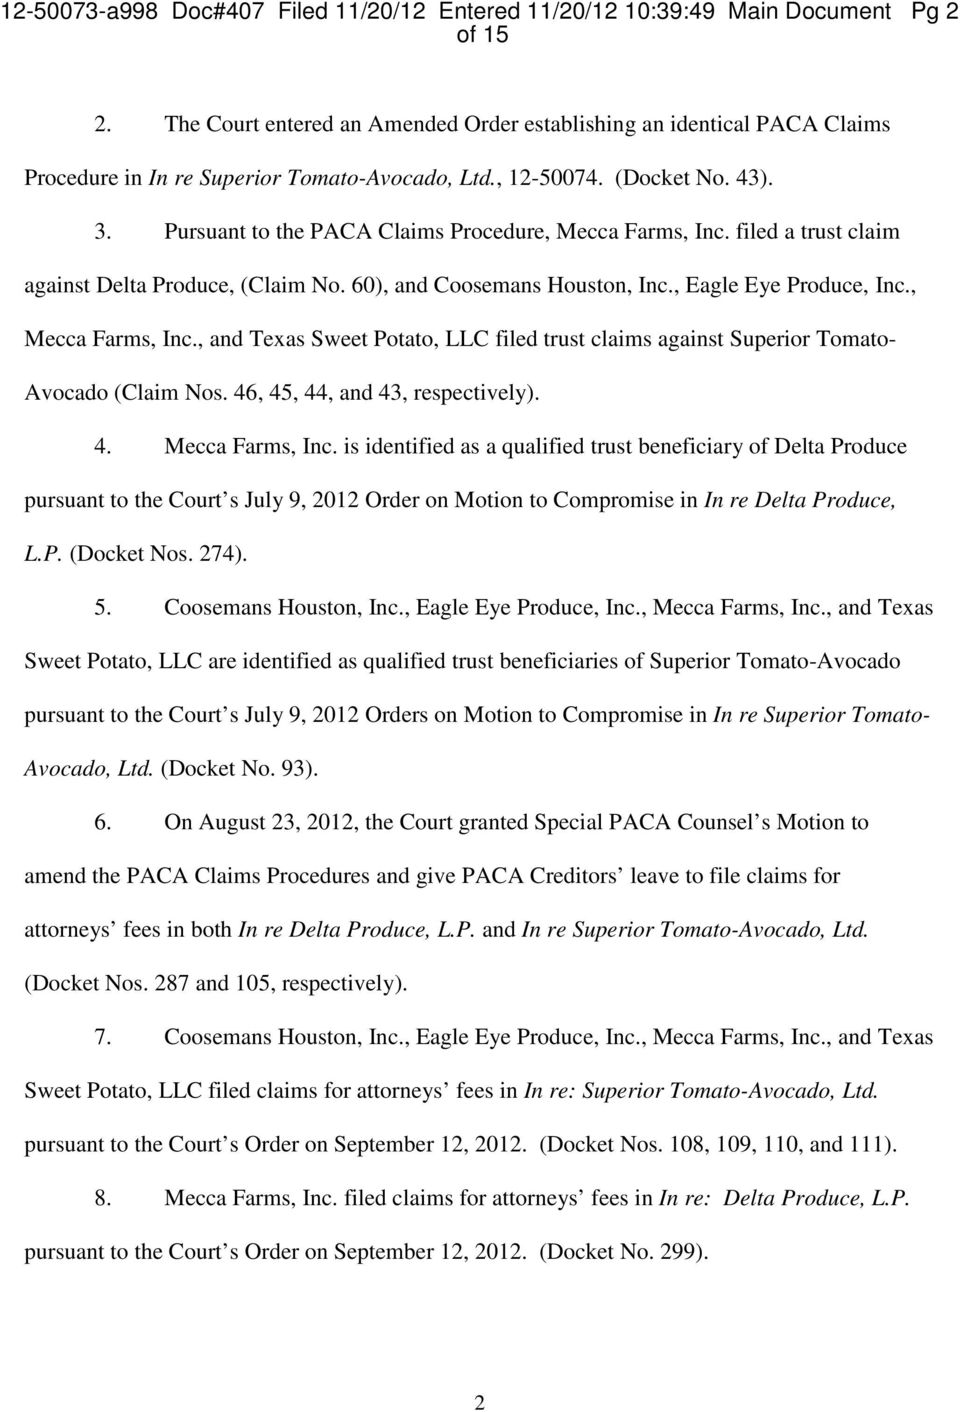 Pursuant to the PACA Claims Procedure, Mecca Farms, Inc. filed a trust claim against Delta Produce, (Claim No. 60), and Coosemans Houston, Inc., Eagle Eye Produce, Inc., Mecca Farms, Inc., and Texas Sweet Potato, LLC filed trust claims against Superior Tomato- Avocado (Claim Nos.